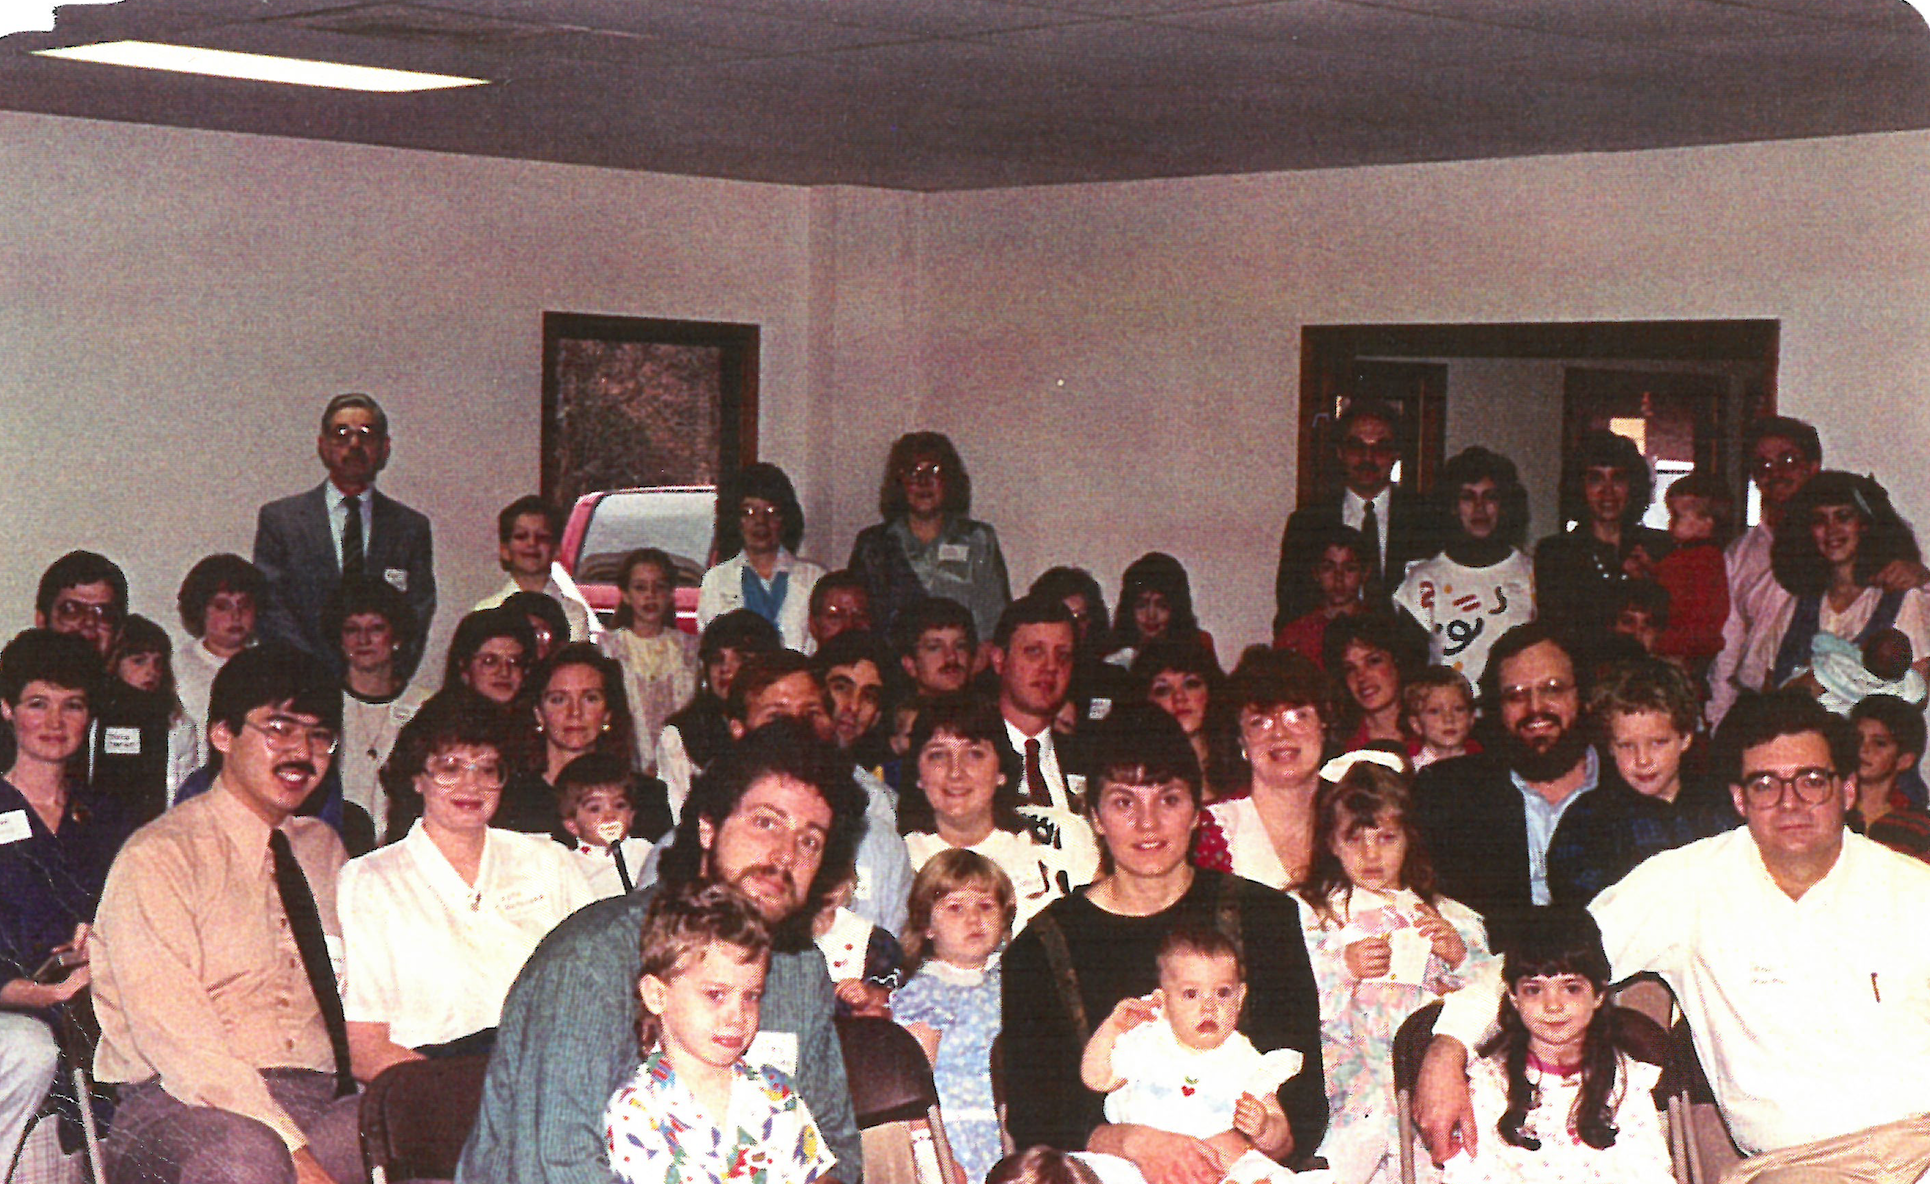 FOUR OAKS BEGAN … - as a Bible study in a small Tallahassee apartment in 1990. Nearly three decades later, the vision that birthed the church continues to form and fuel us: the good news of Jesus changes everything.Our journey together has gathered us in homes, storefronts, warehouses, cafeterias, and rented auditoriums as we've sought to learn the ways of Jesus Christ together. We now exist in three unified, interdependent congregations throughout Tallahassee. Convinced that vibrant local congregations are critical to the faith of believers and the flourishing of a city, Four Oaks exists to treasure, grow, and go in the gospel of Jesus Christ.